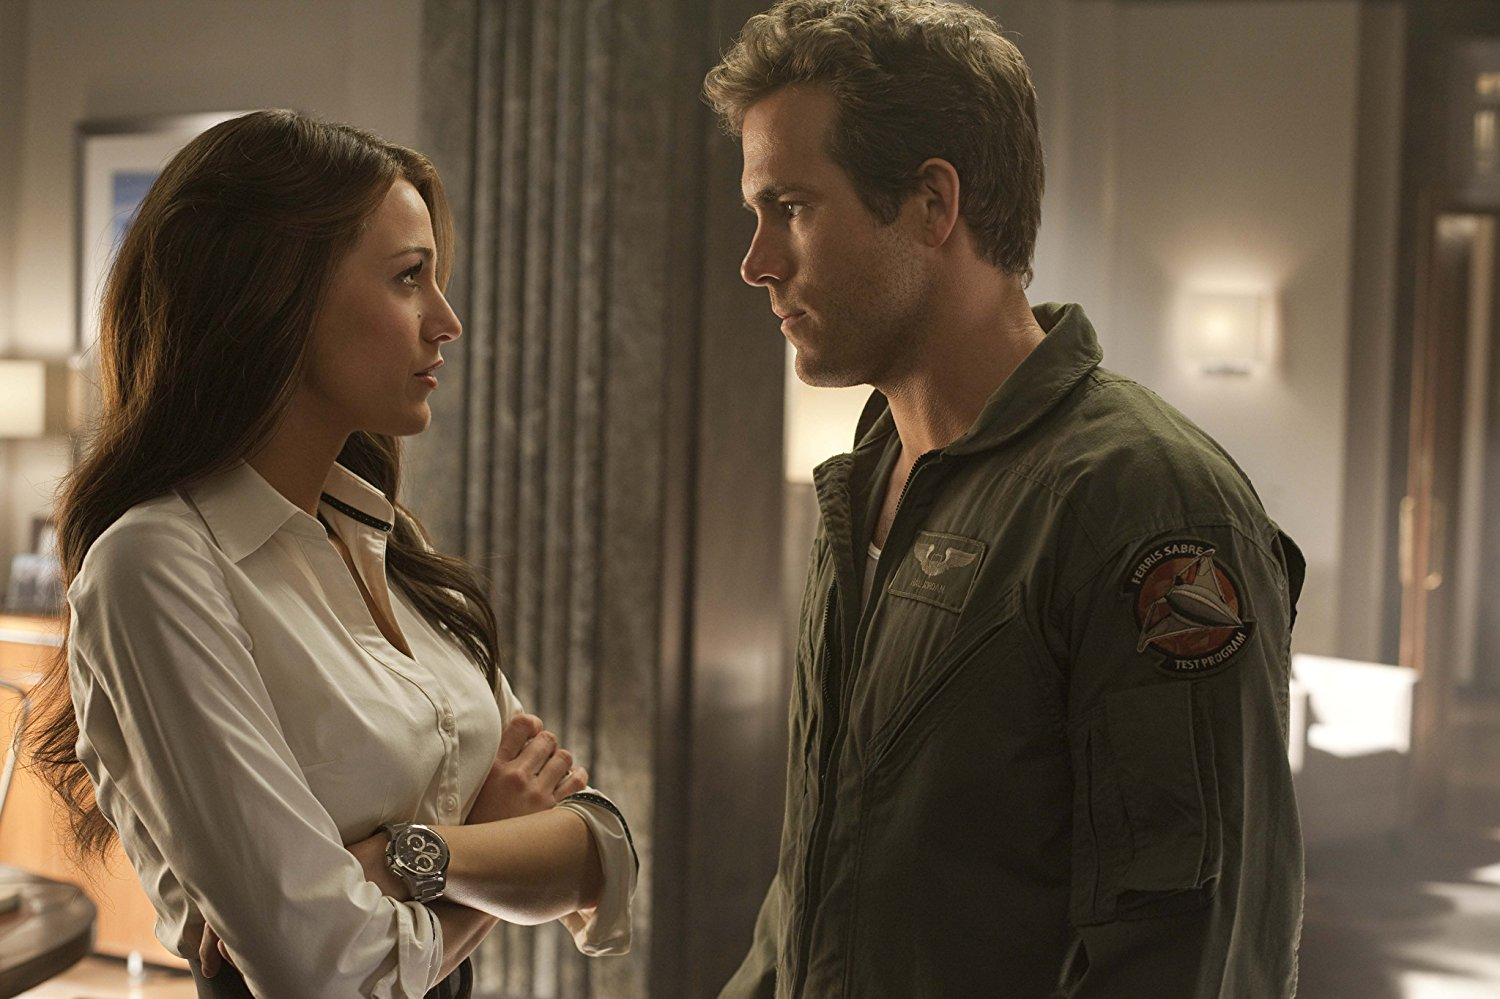 Carol Ferris (Blake Lively) and Hal Jordan (Ryan Reynolds) in Green Lantern (2011)